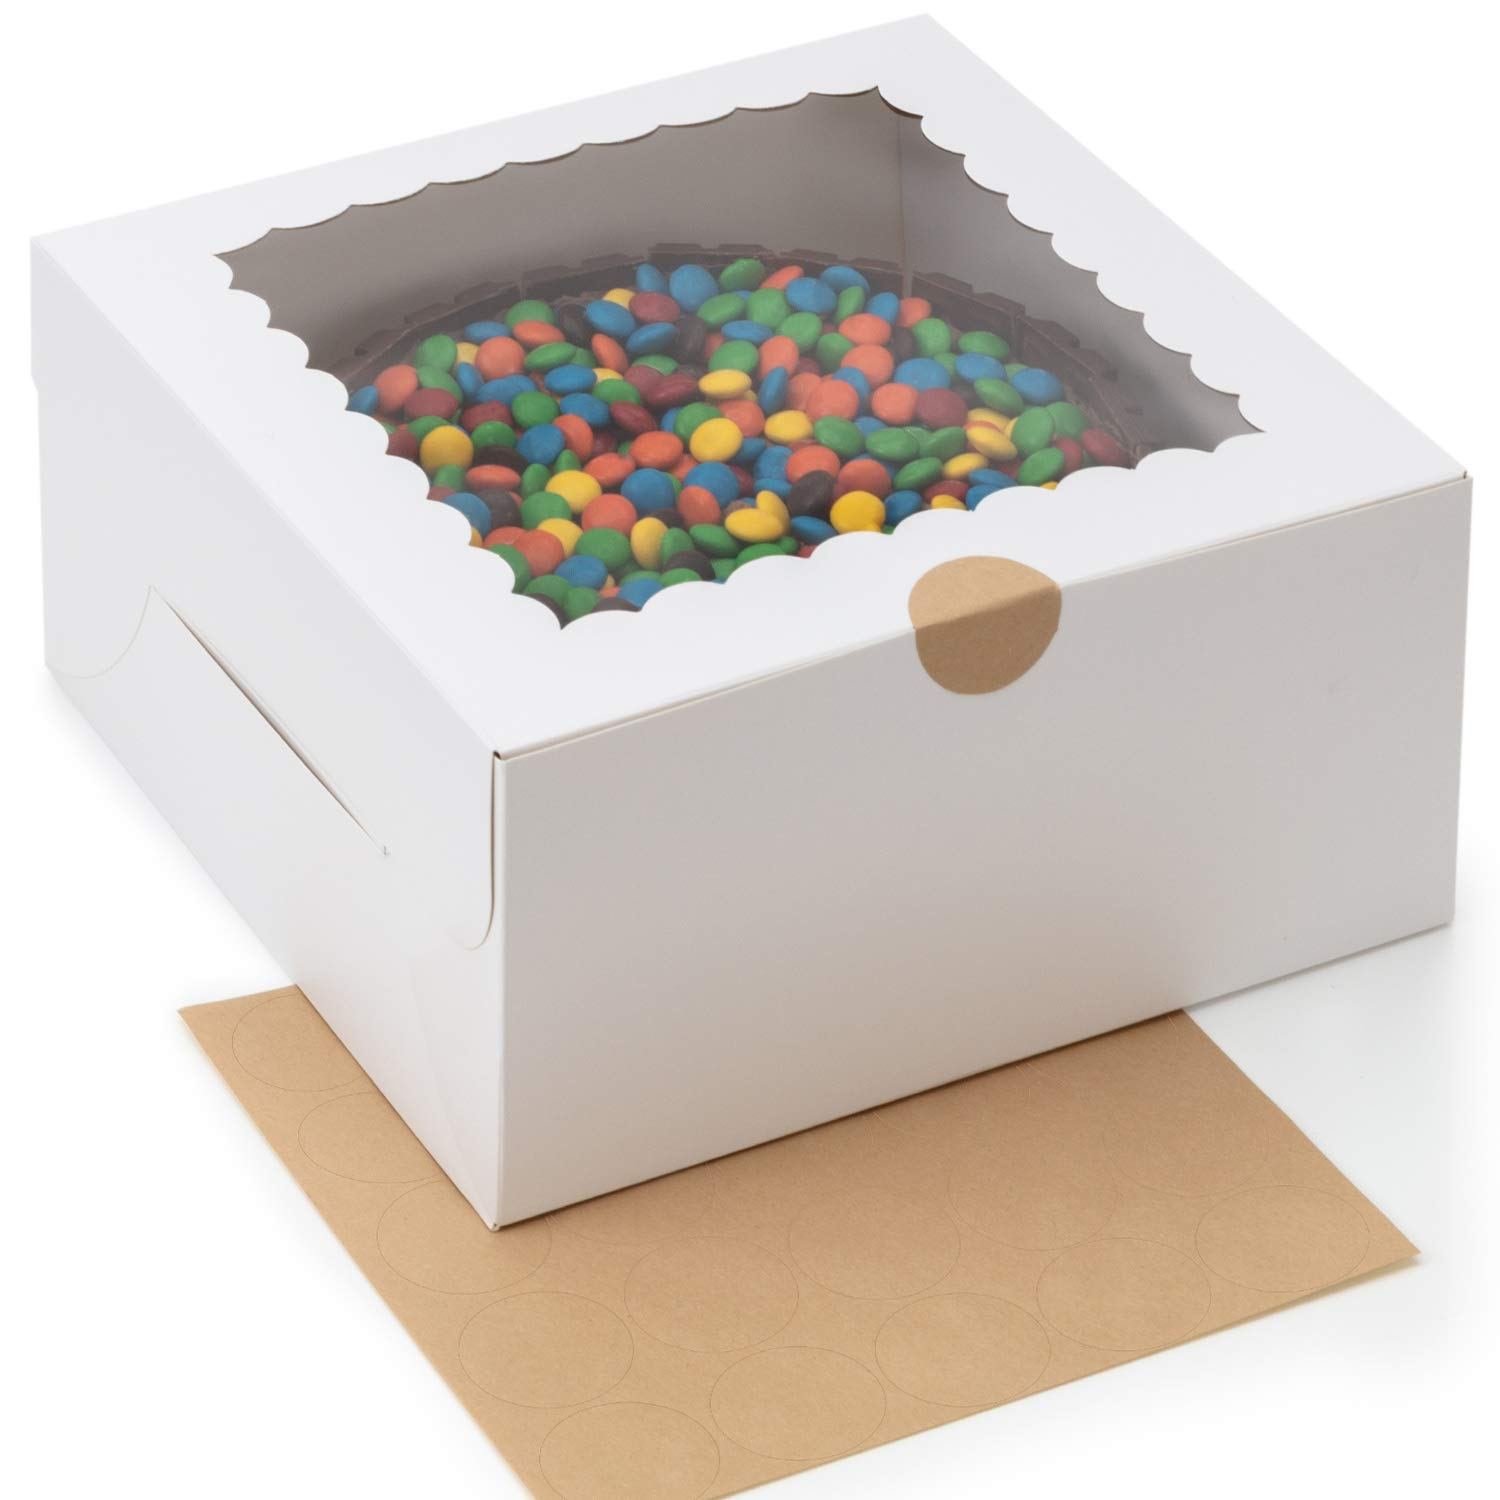 [25-Pack] White Cake Boxes 10 x 10 x 5